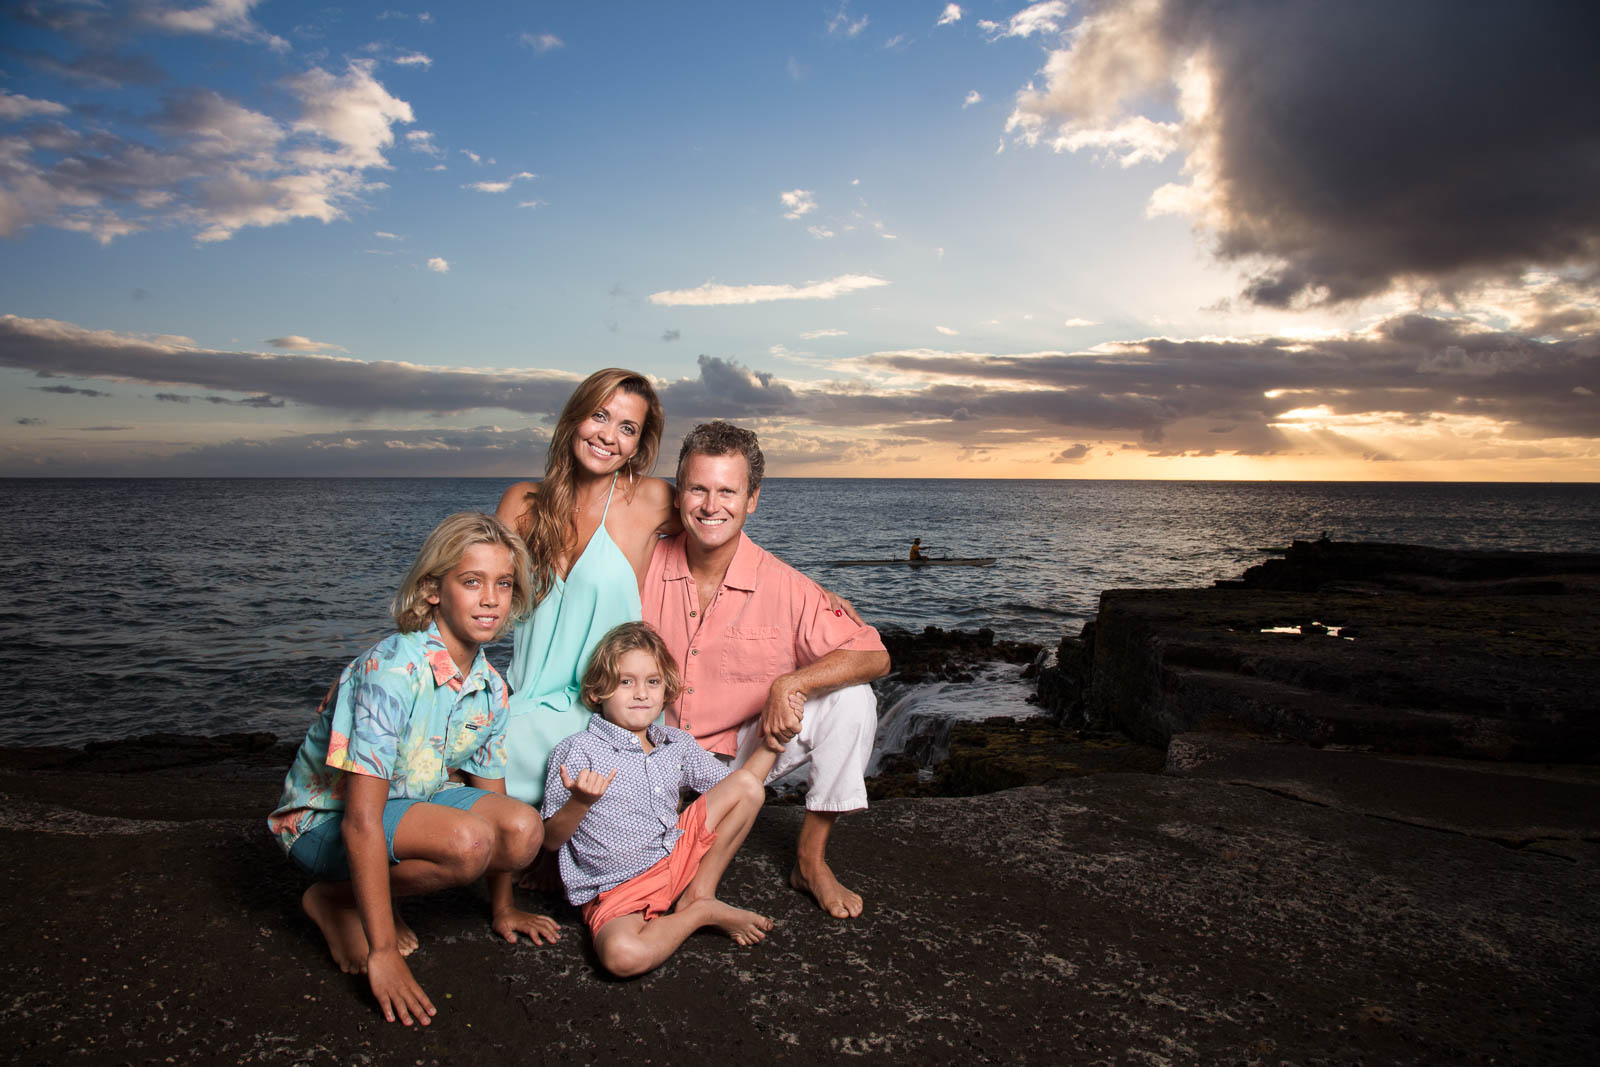 oahu family sunset portrait photography